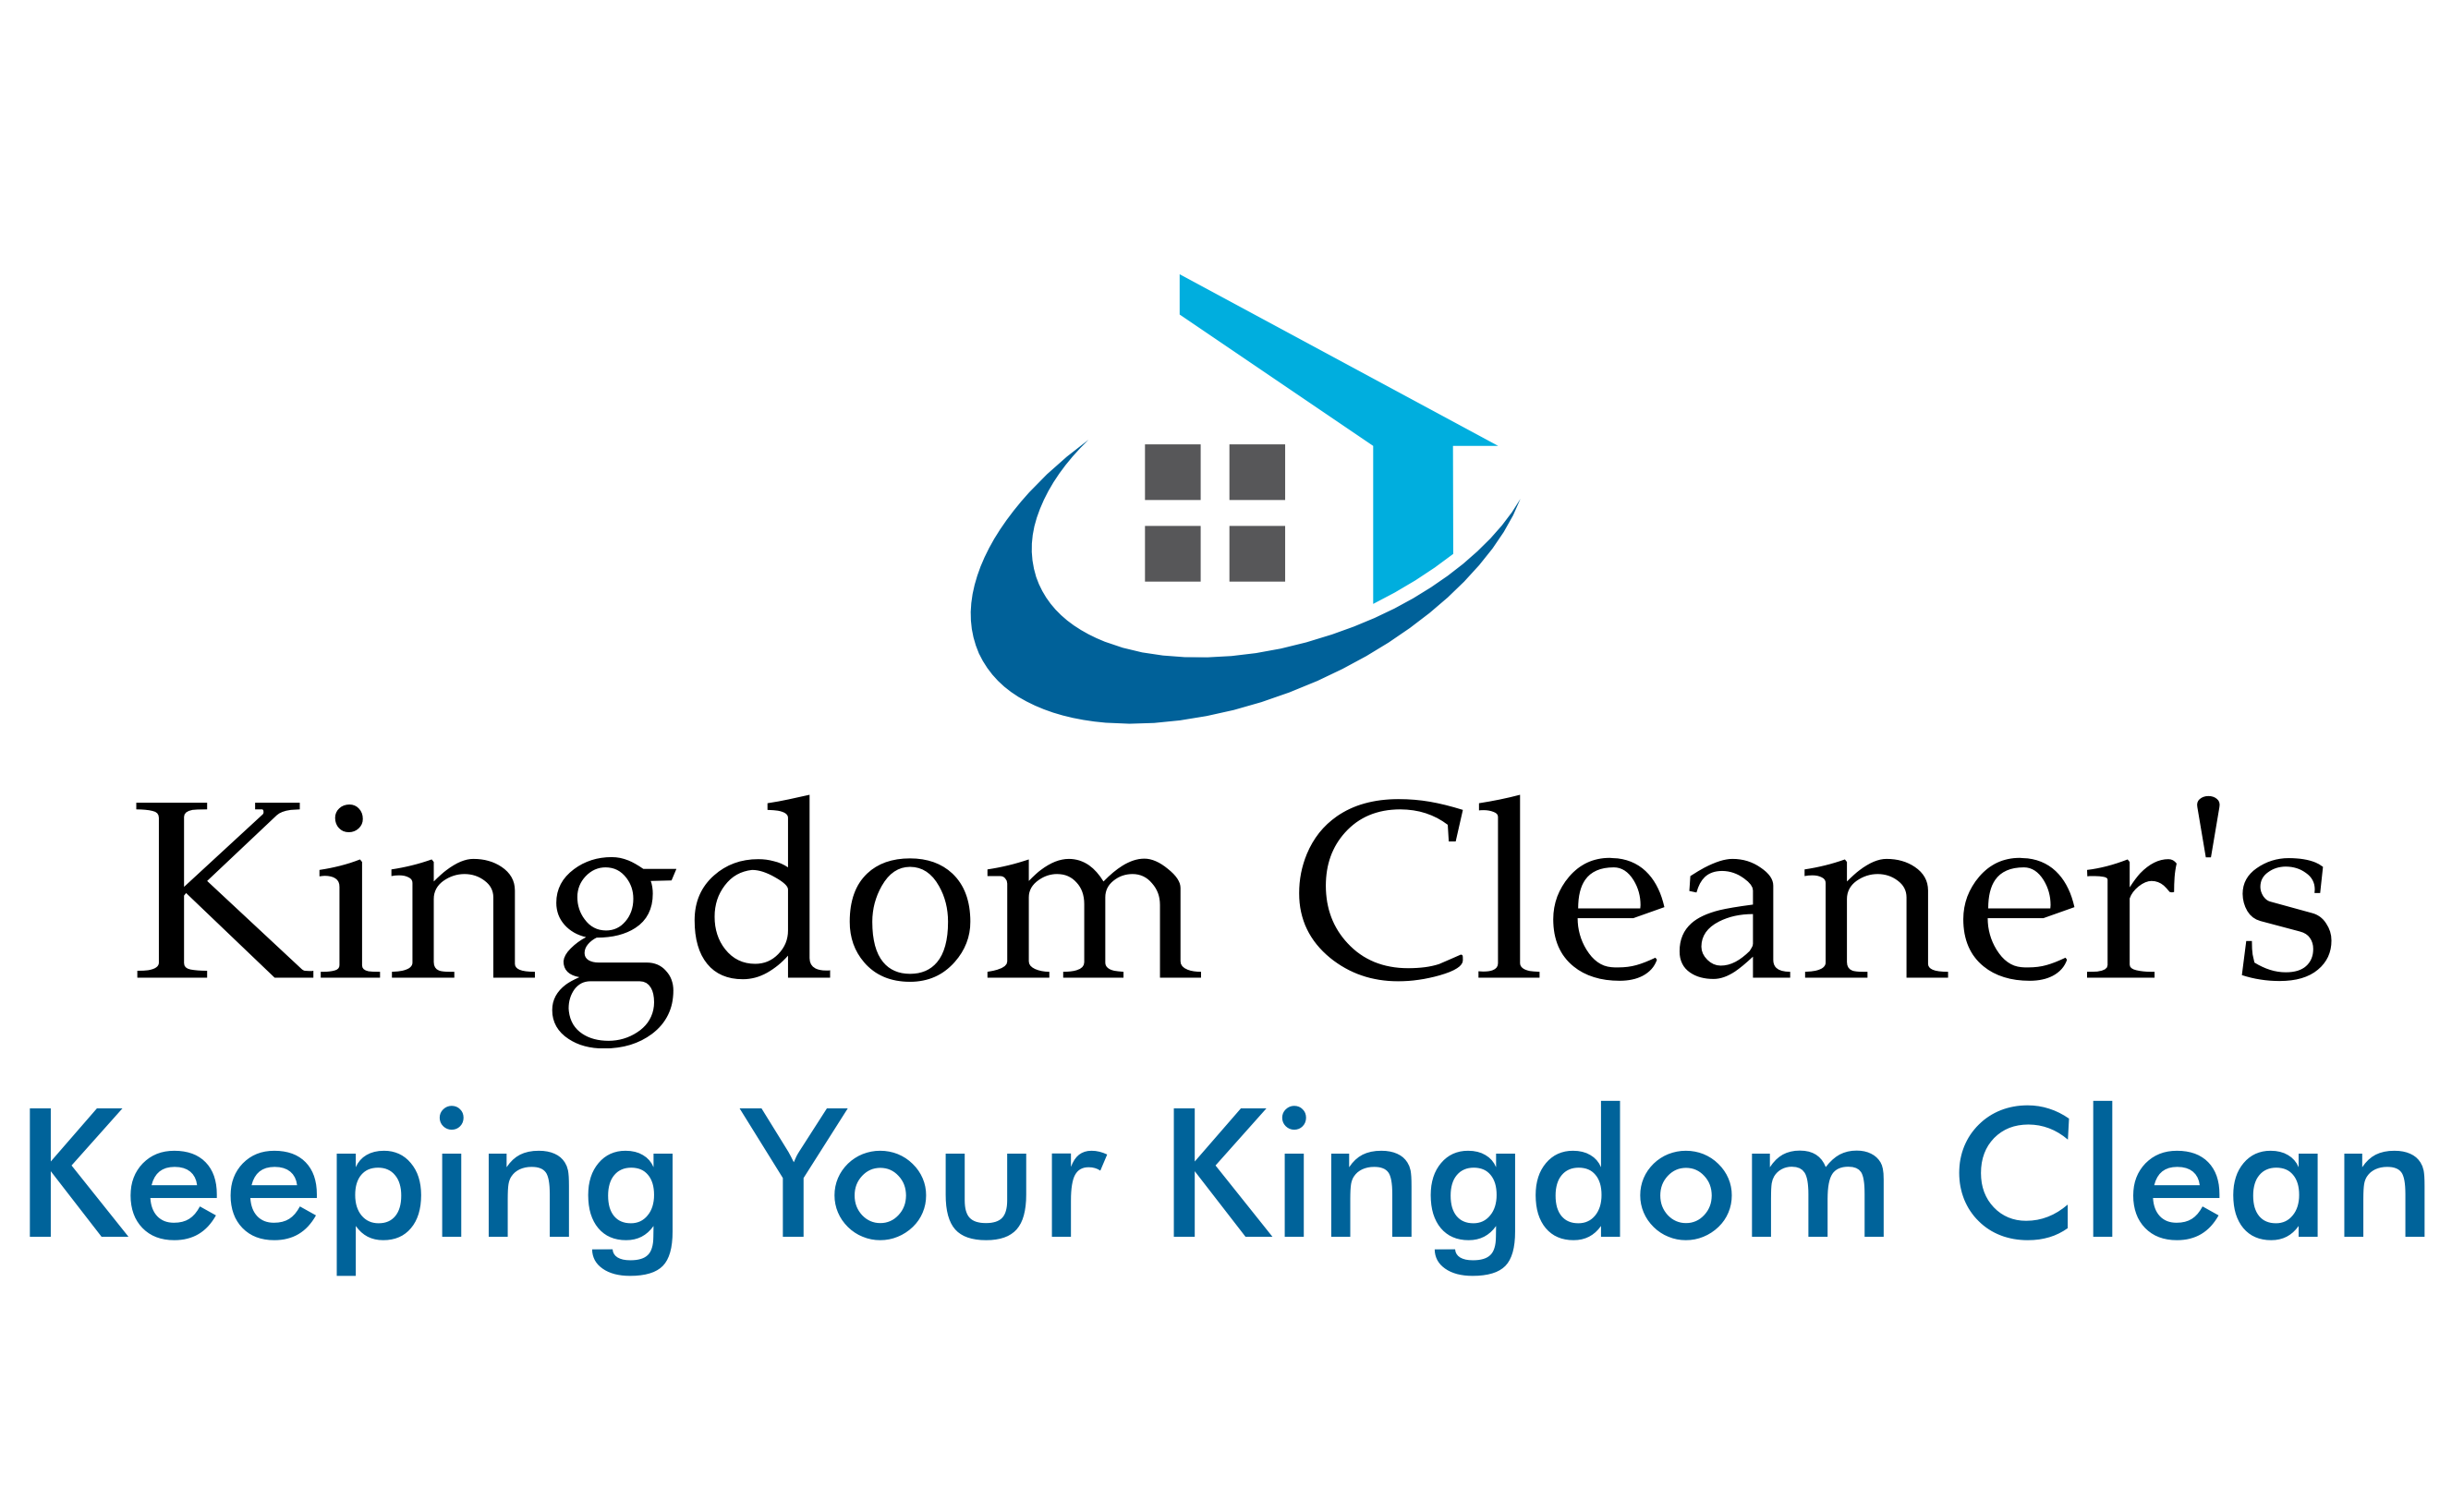 Kingdom Cleaner Logo